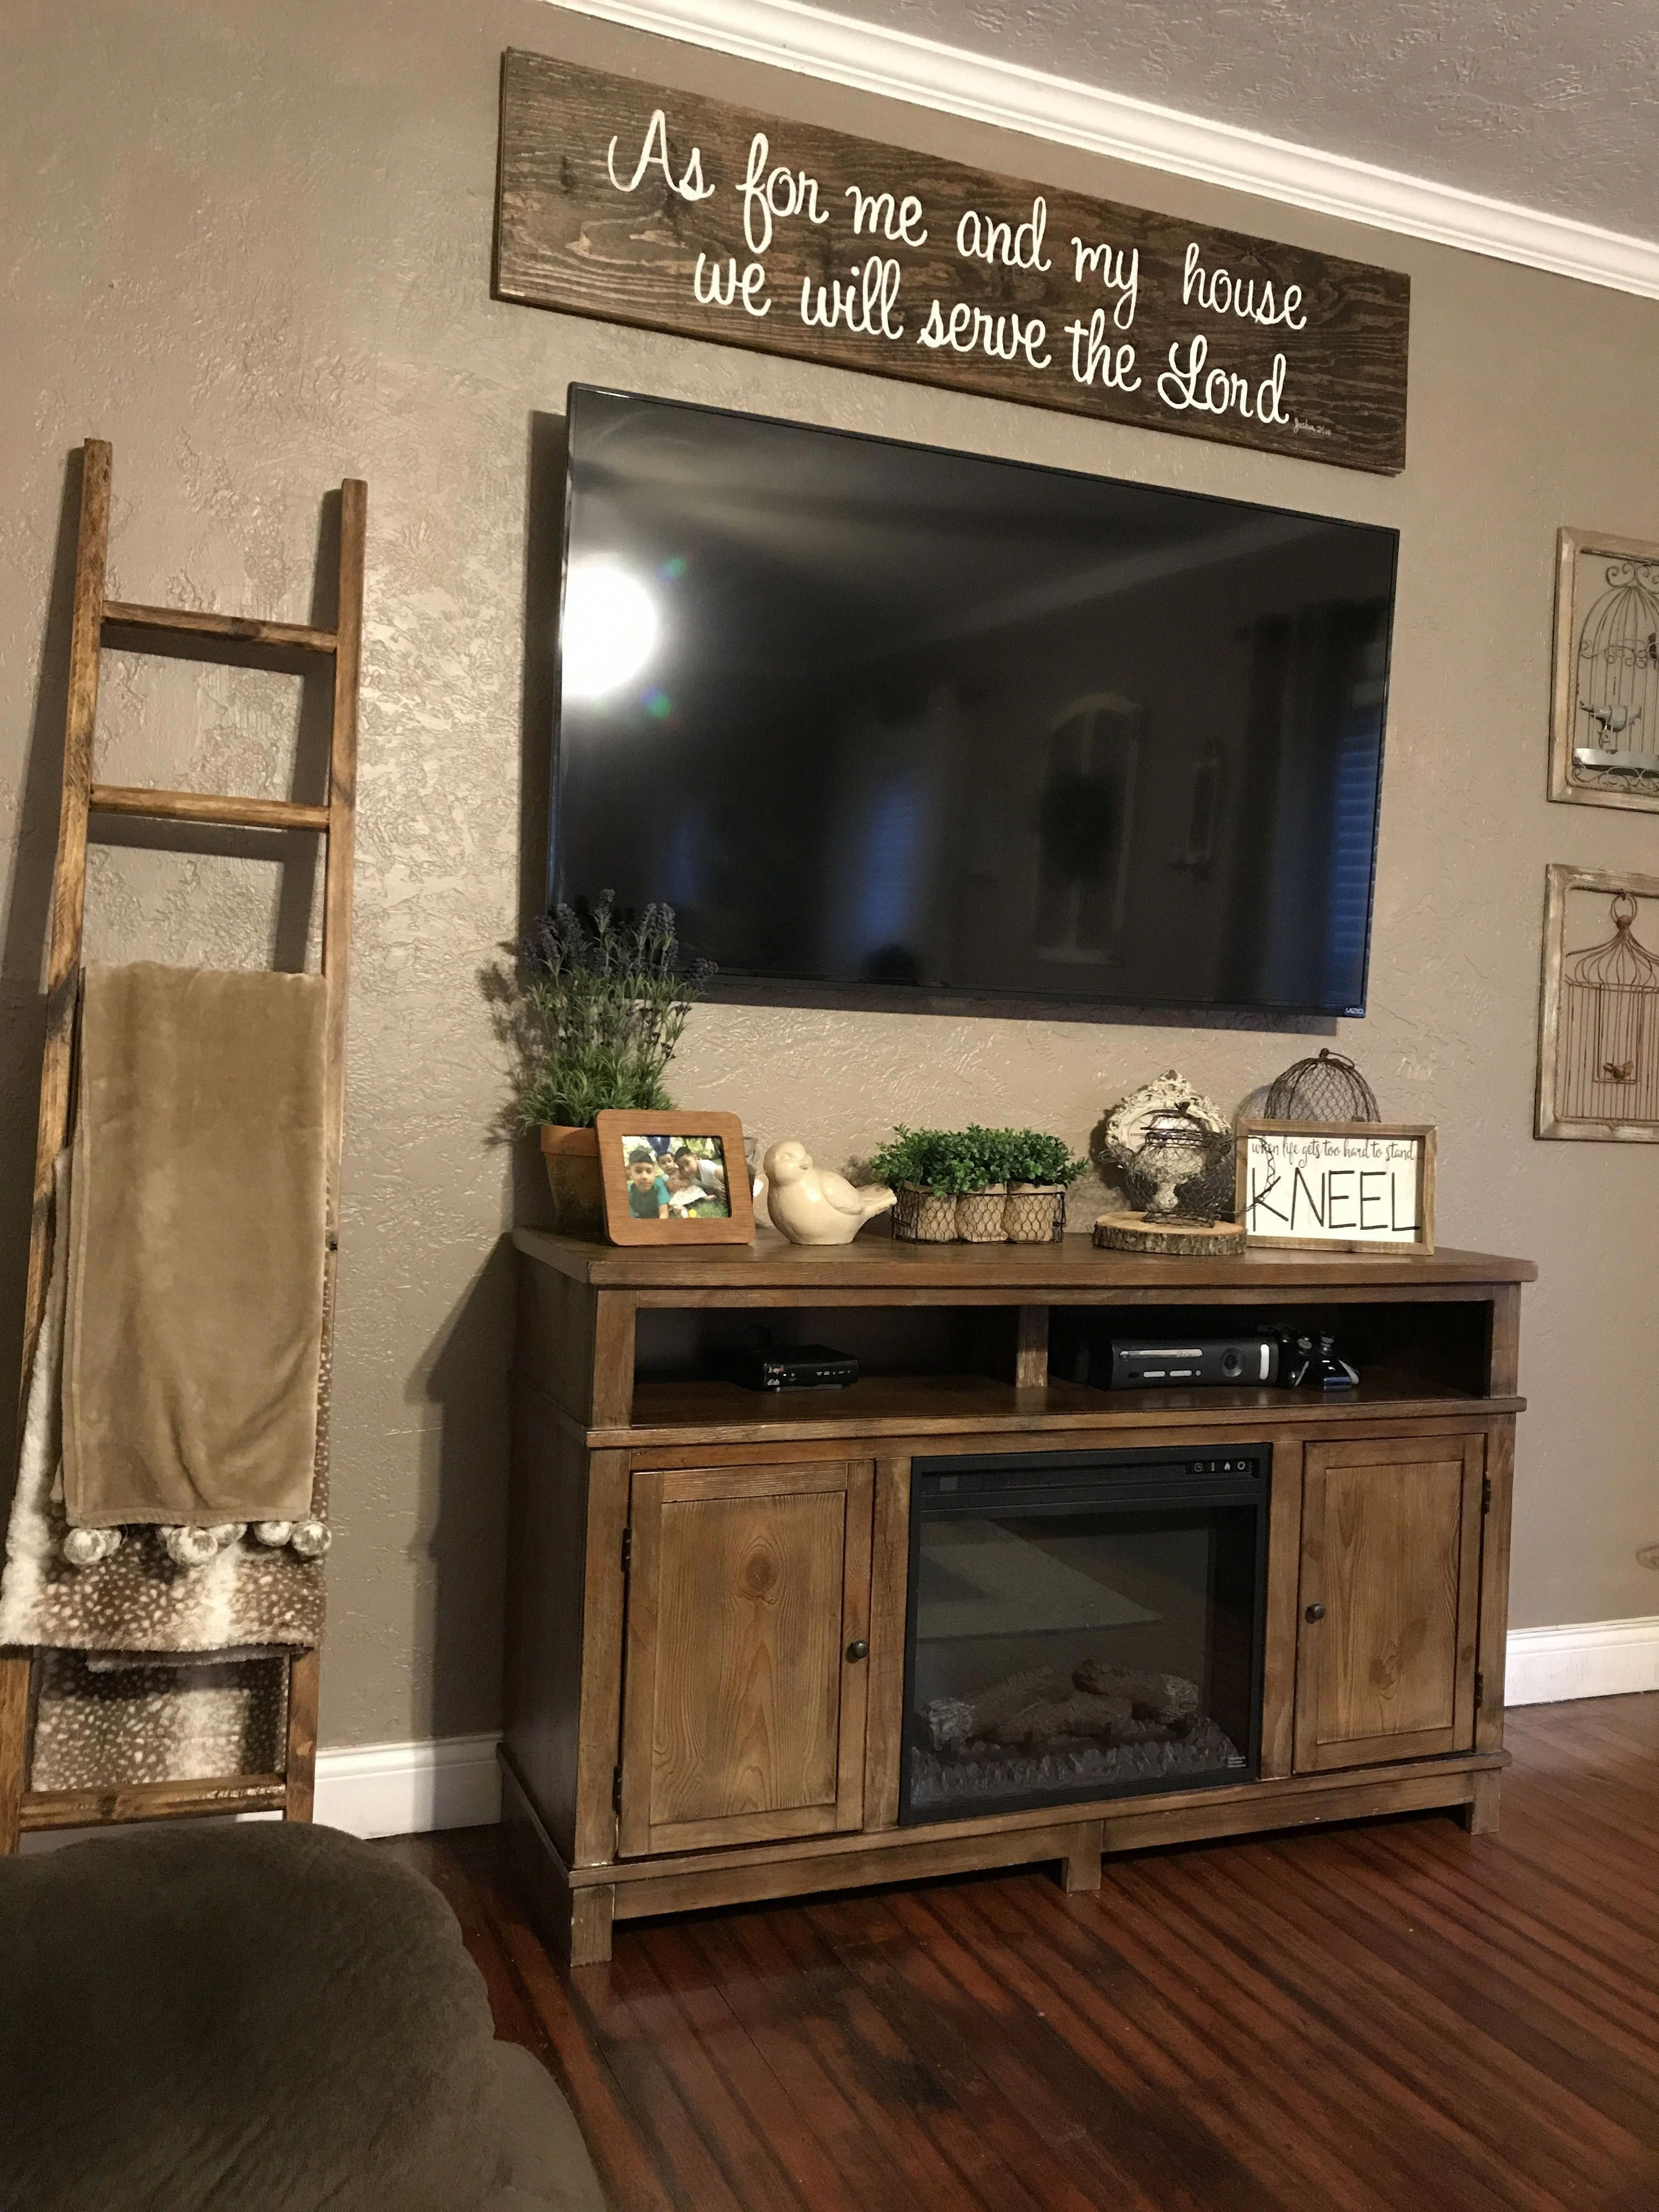 Explore Tv Wall Mount Ideas On Pinterest See More Ideas About Tv Wall Ideas Living Room M Farm House Living Room Living Room Tv Wall Living Room Tv Stand